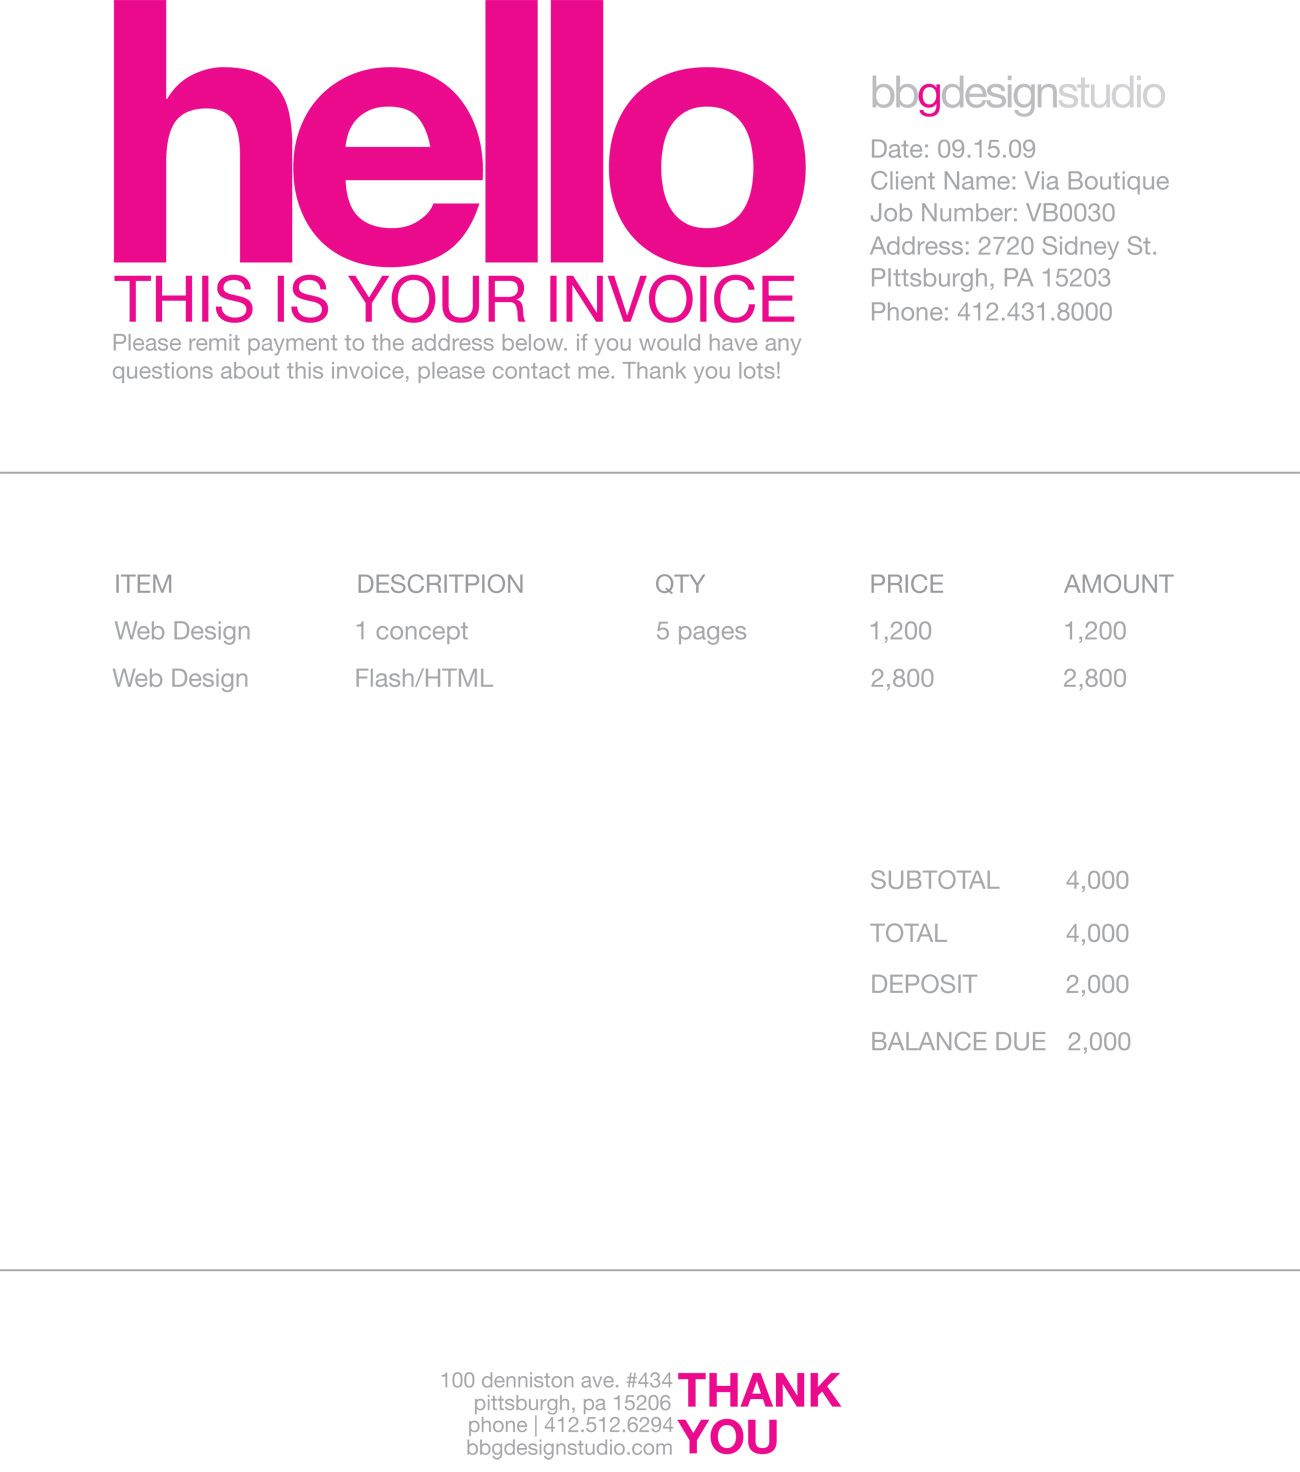 Carsforlessus  Mesmerizing  Images About Invoice Design On Pinterest With Marvelous How To Make A Invoice Template Besides Invoice Tmeplate Furthermore What Is A Dealer Invoice With Alluring Customize Invoice Also Invoice For Freelance Work In Addition Invoice Copies And Invoice Aging As Well As Ezy Invoice Additionally Tacoma Invoice Price From Pinterestcom With Carsforlessus  Marvelous  Images About Invoice Design On Pinterest With Alluring How To Make A Invoice Template Besides Invoice Tmeplate Furthermore What Is A Dealer Invoice And Mesmerizing Customize Invoice Also Invoice For Freelance Work In Addition Invoice Copies From Pinterestcom